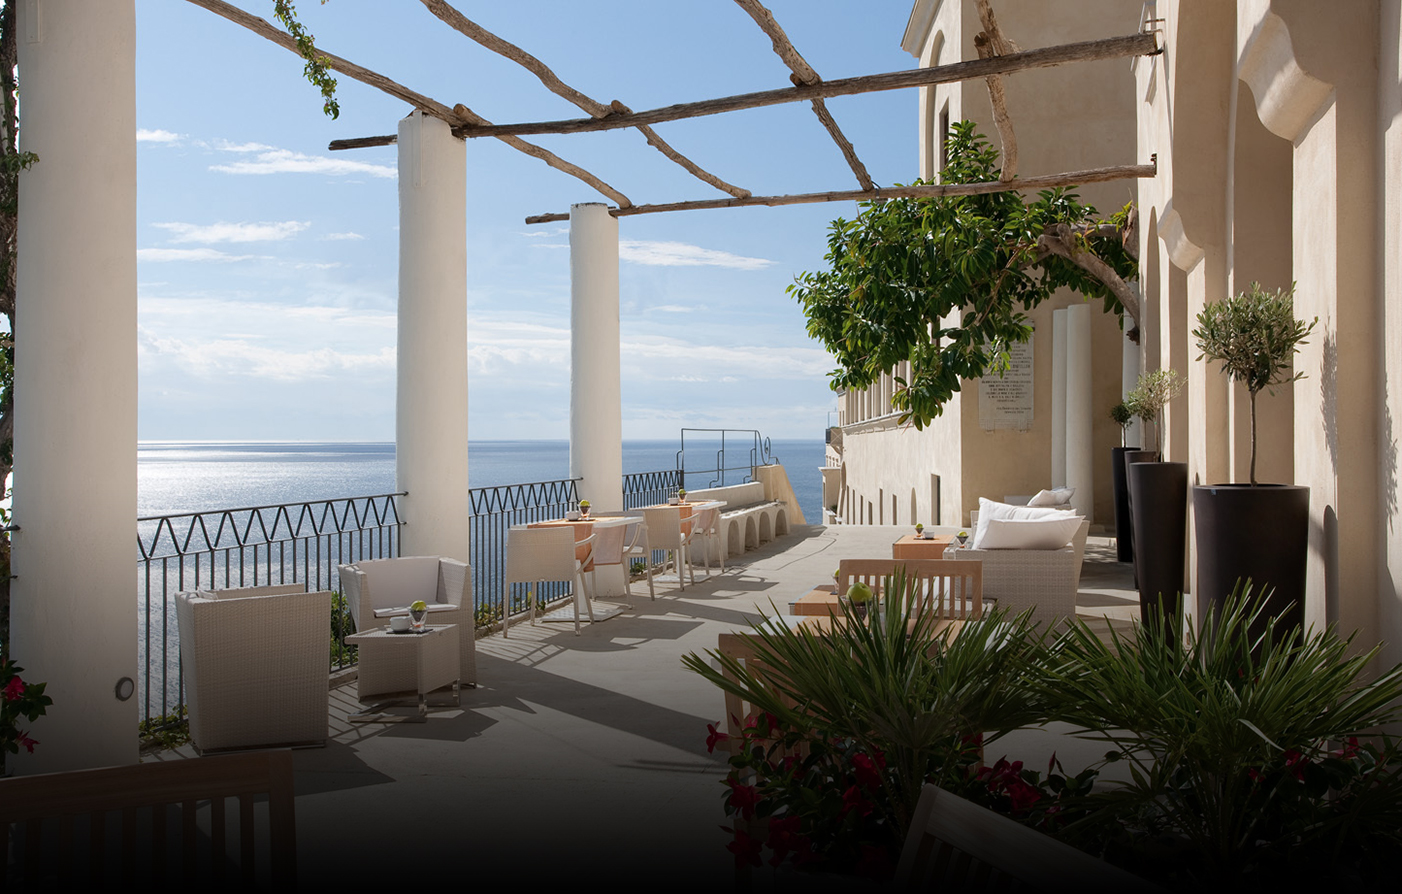 Grand hotel convento di amalfi reviews luxury hotel in italy for Convento di amalfi